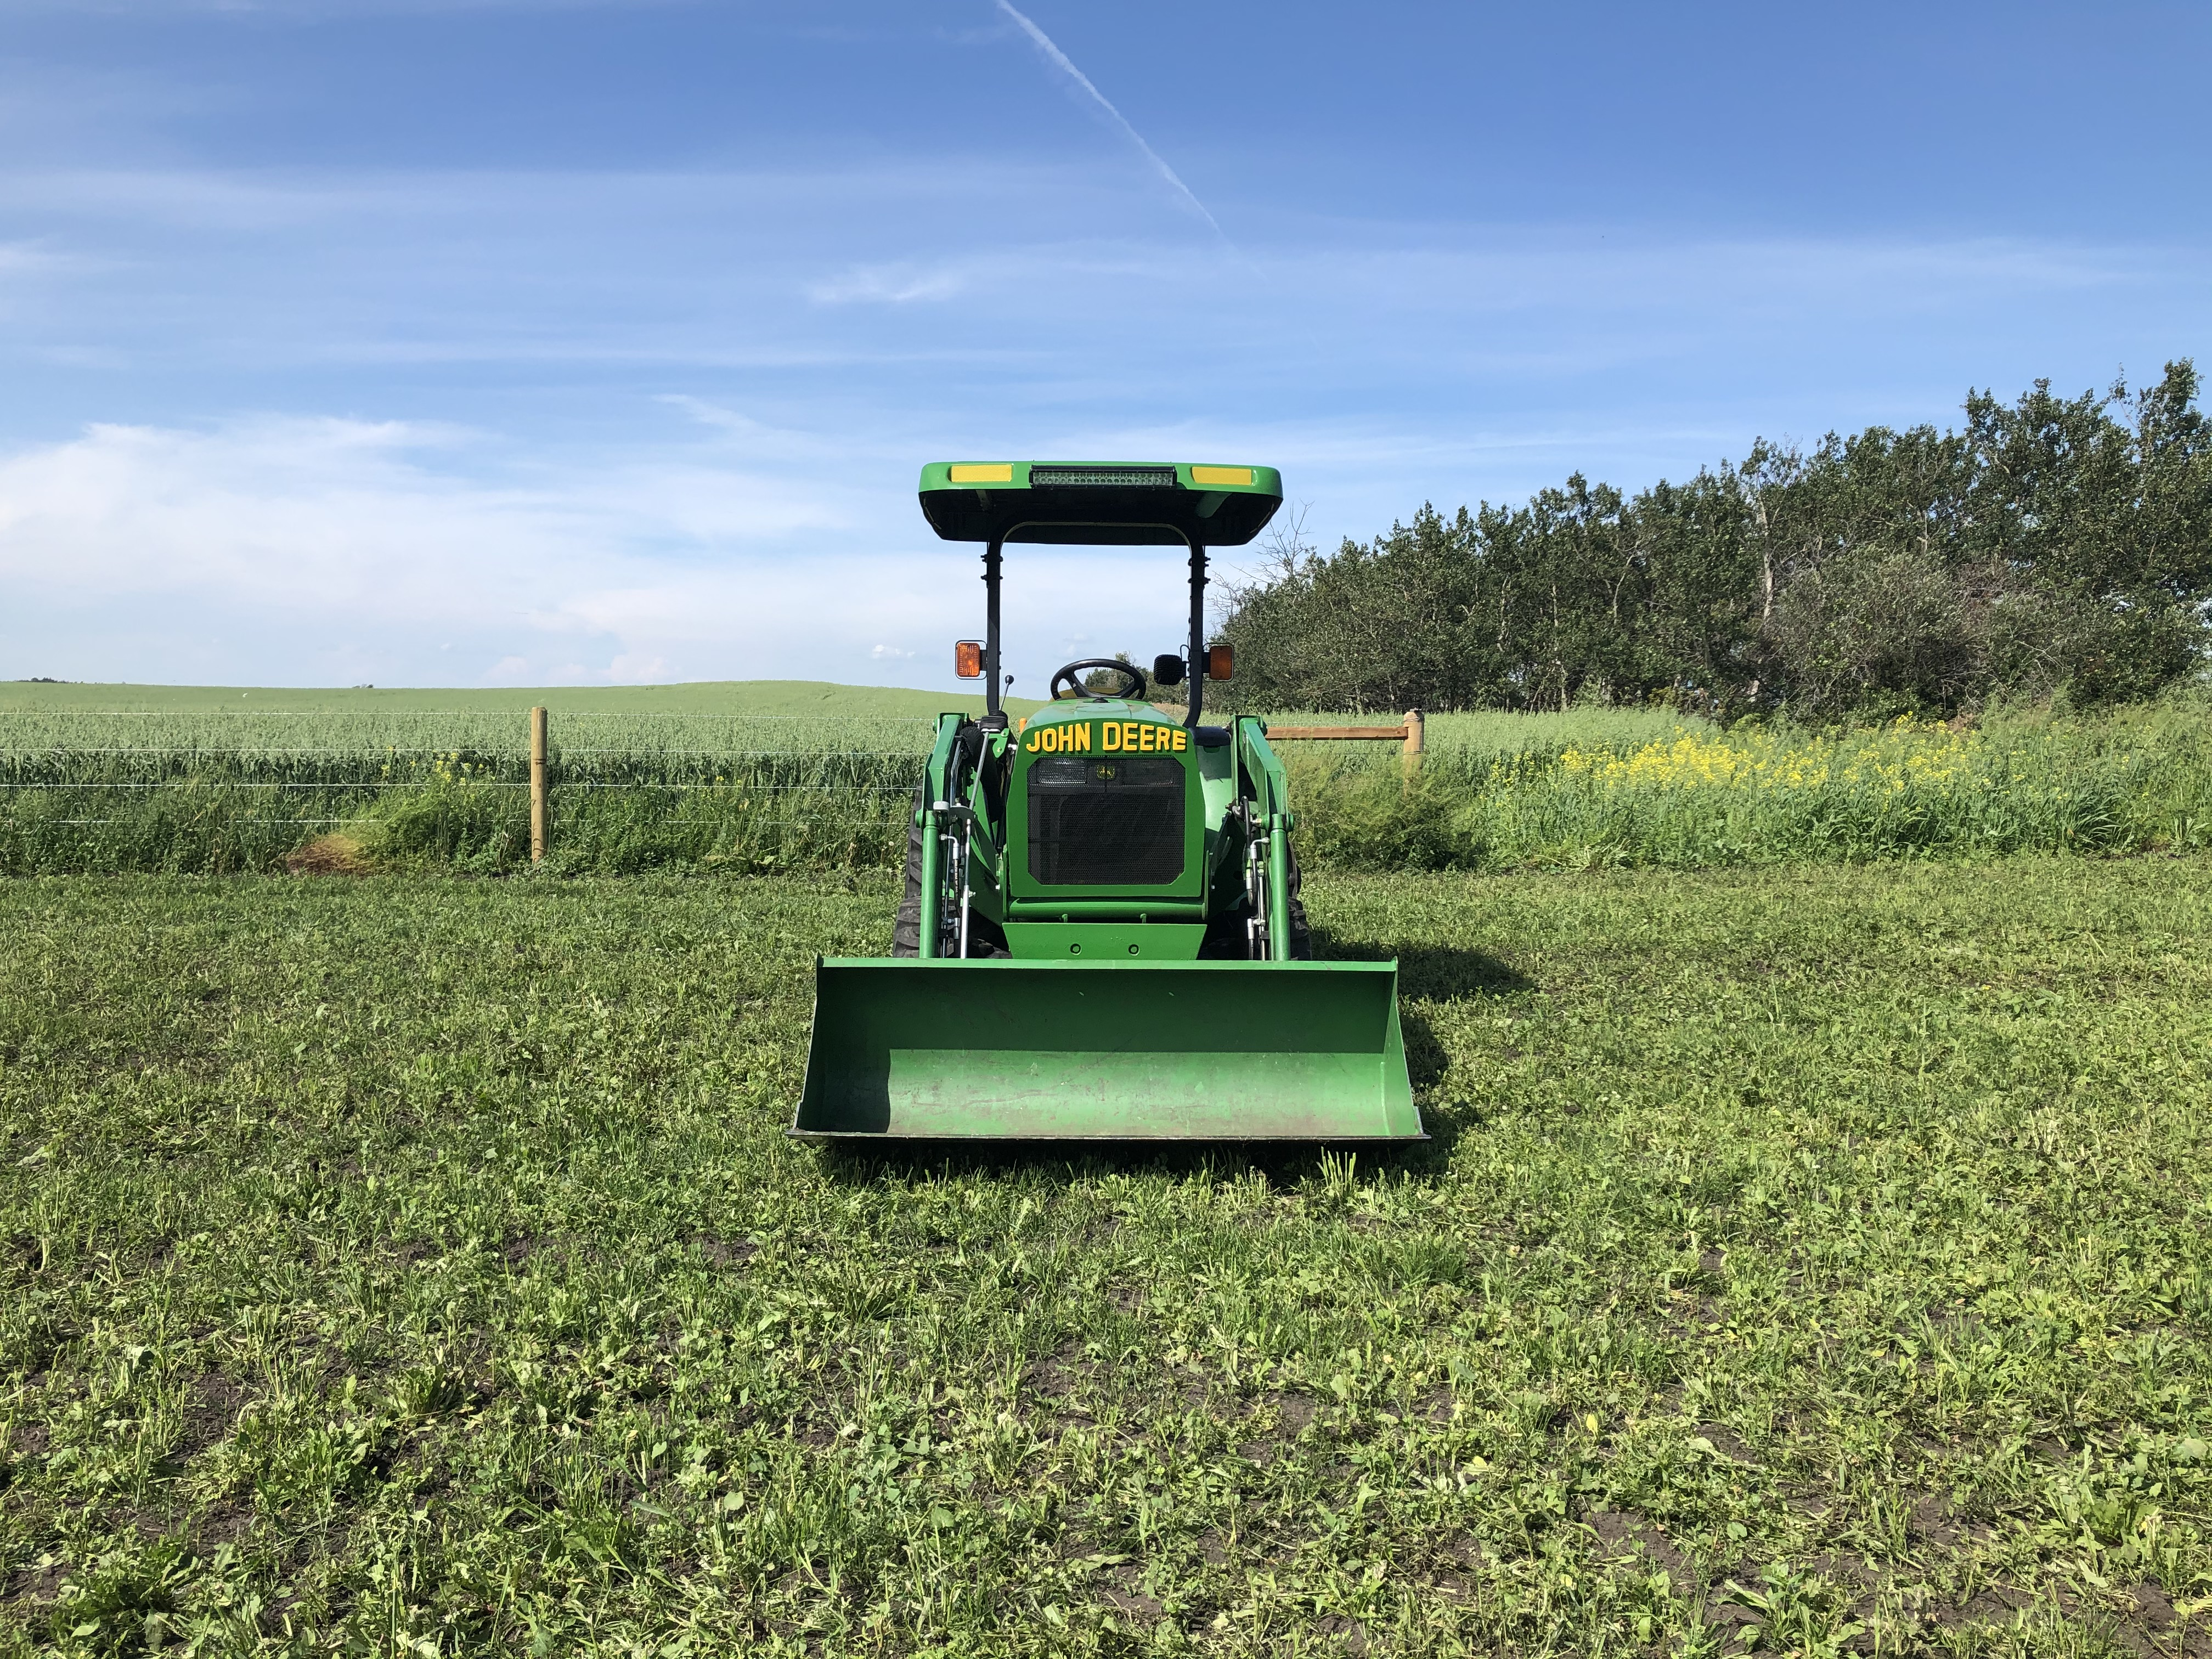 Click image for larger version.  Name:deere fron field.JPG Views:19 Size:6.22 MB ID:701236